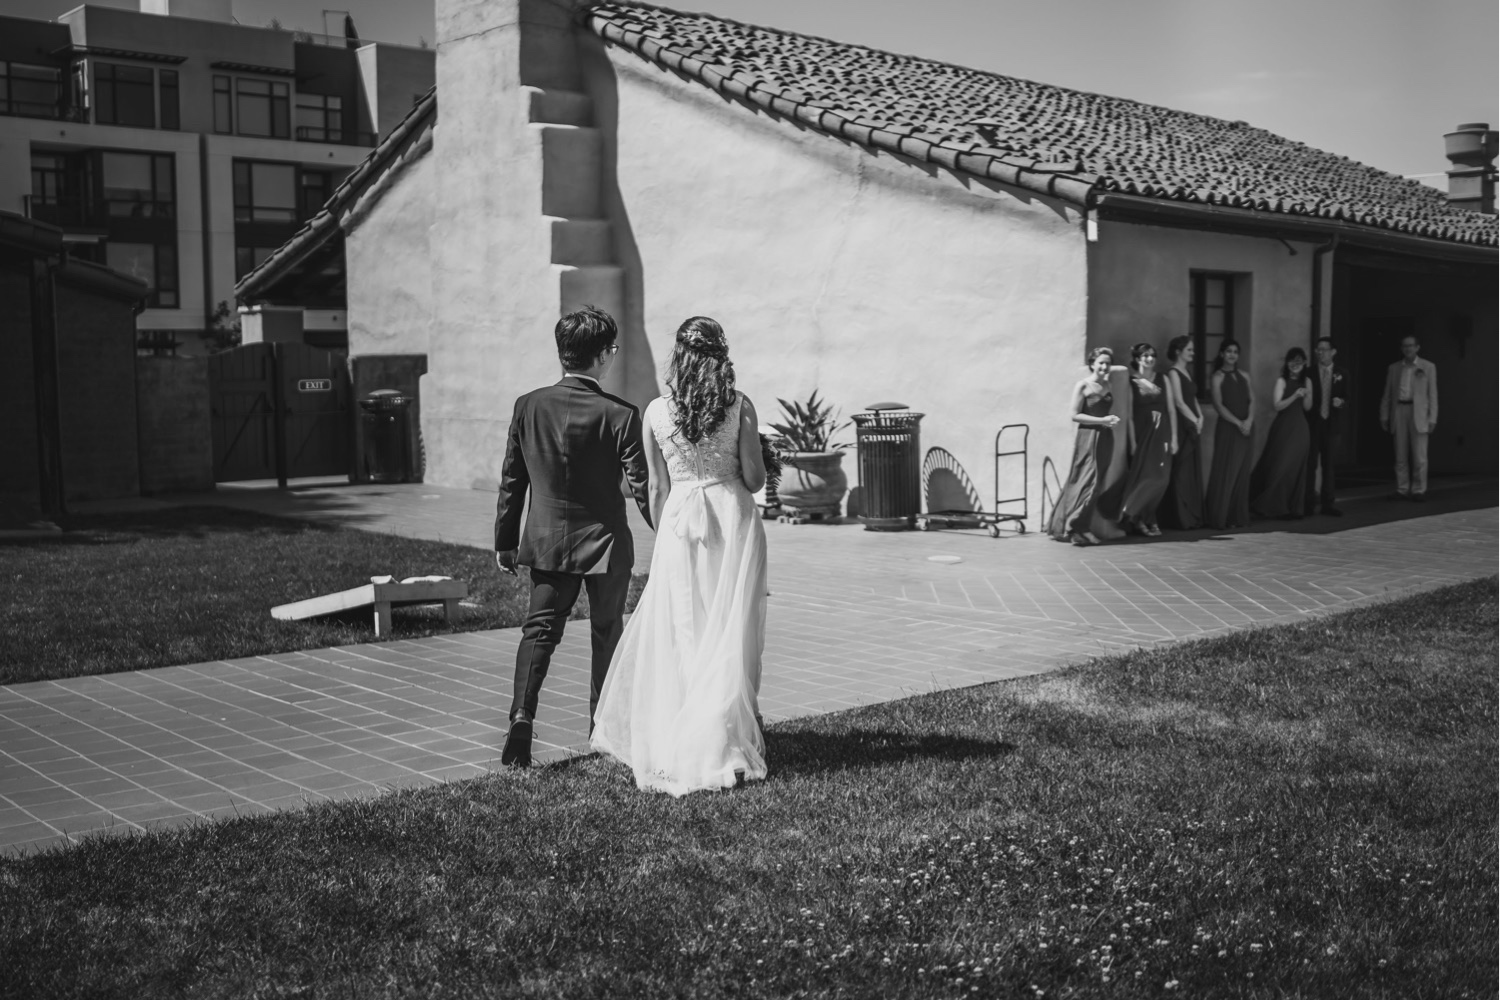 19_W190526.QT-16_San_mateo_photographer_wedding.jpg